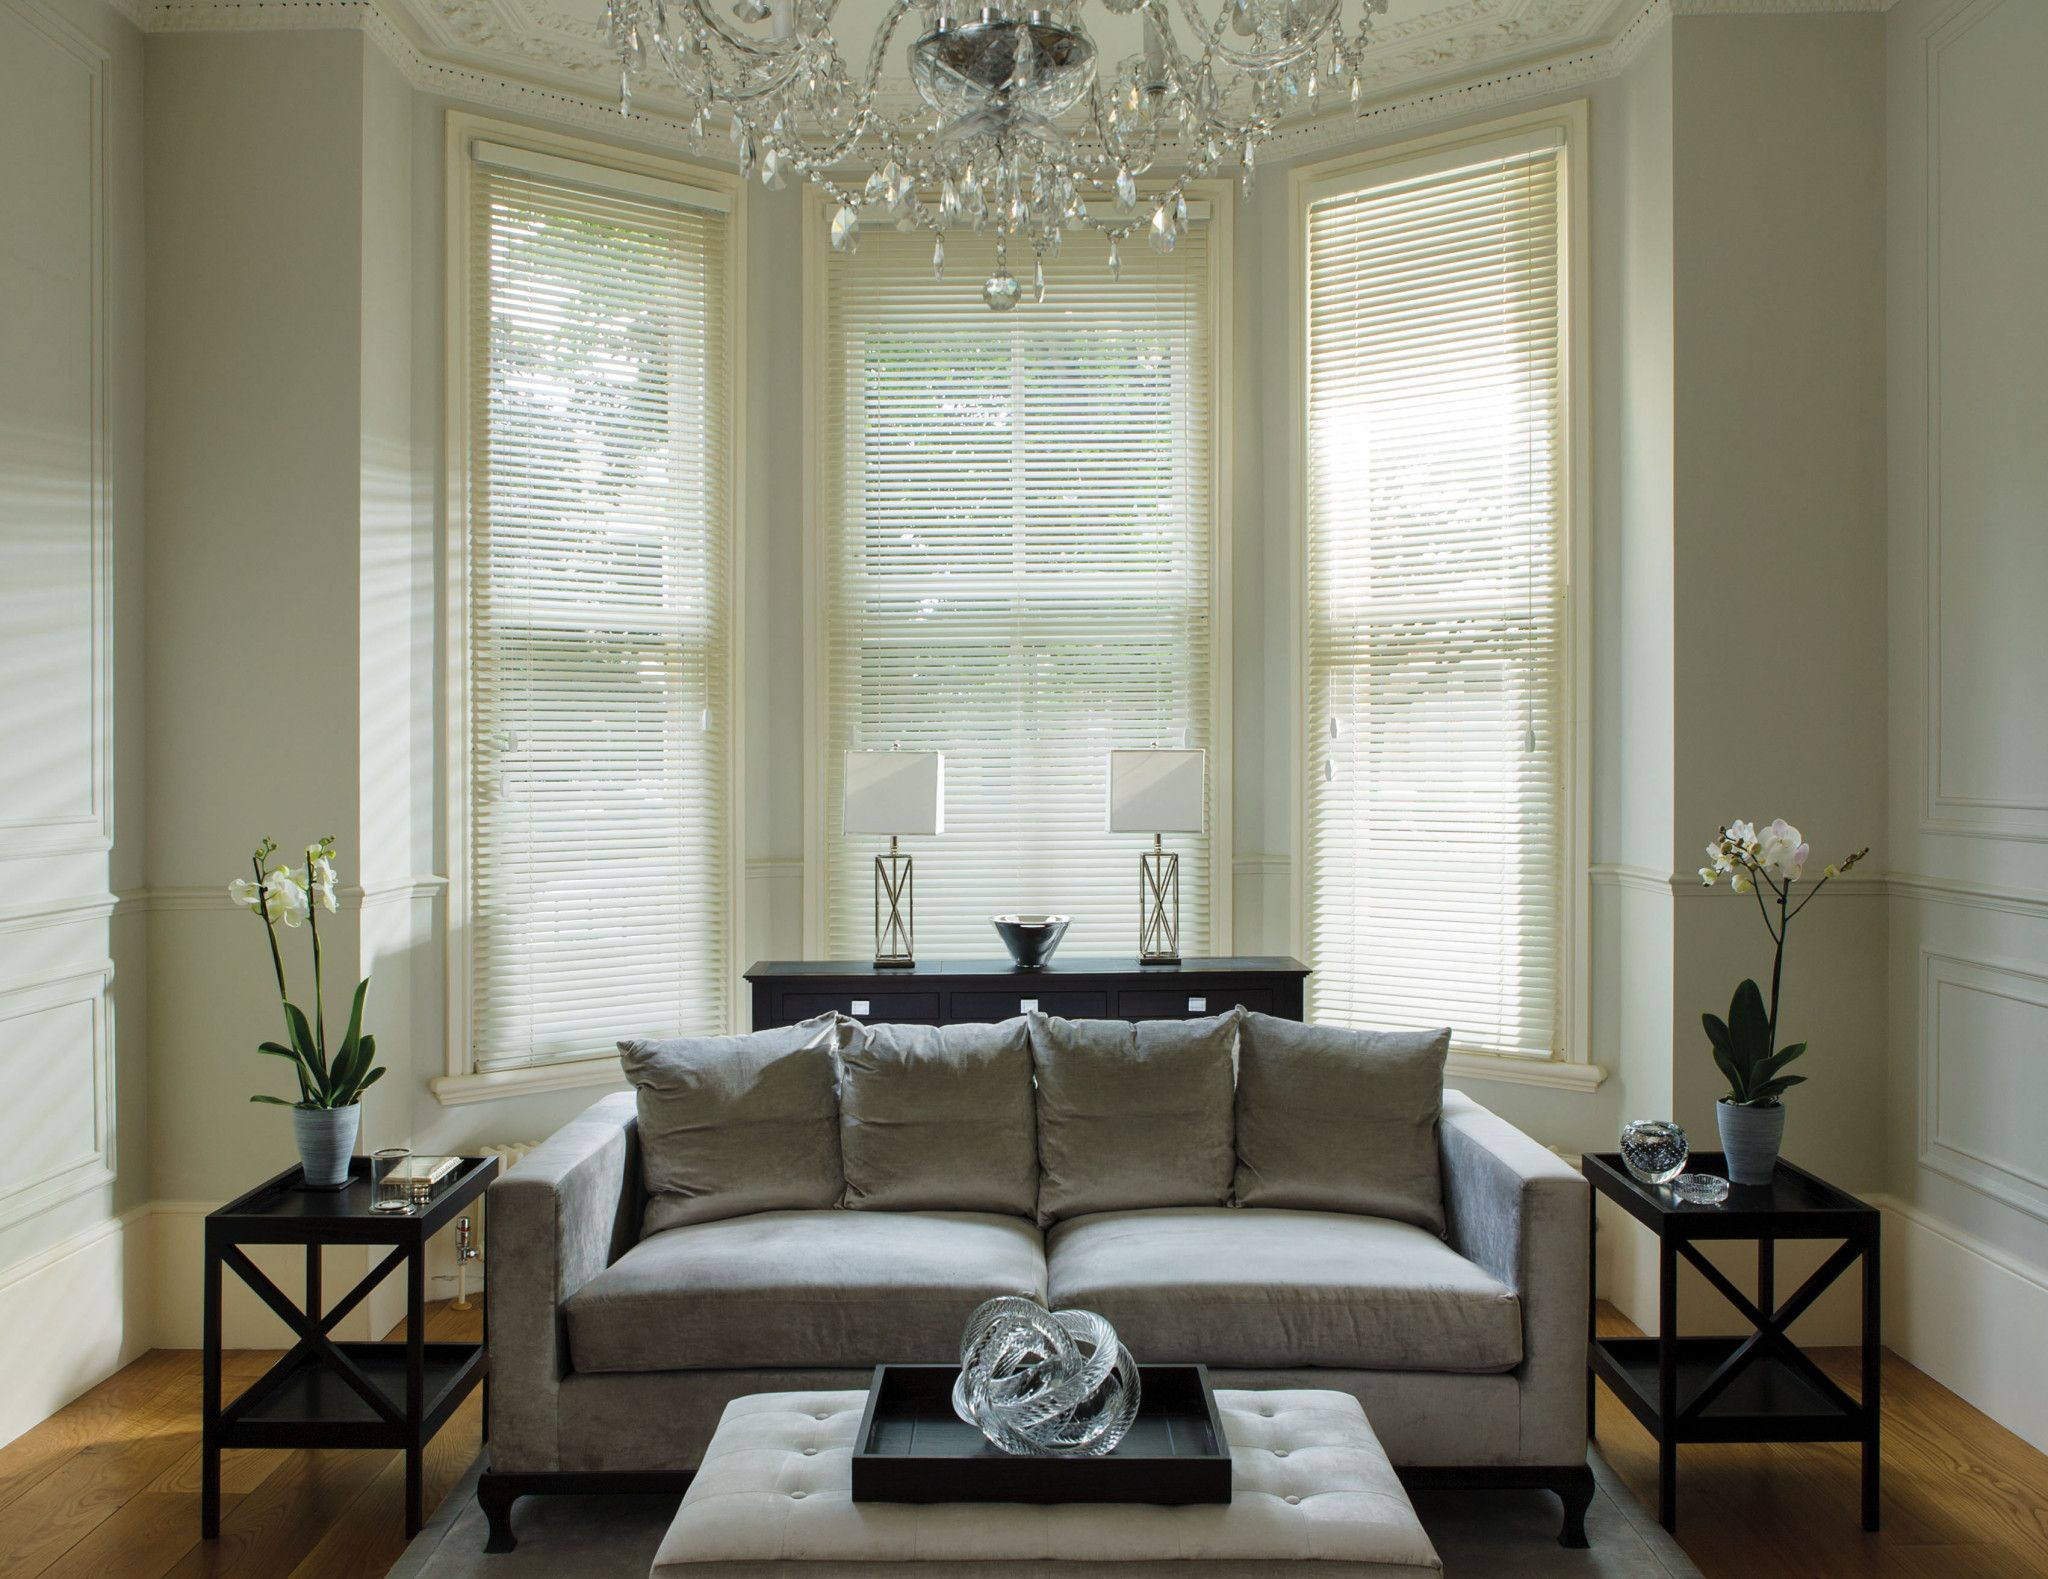 Stunning Venetian Blinds For Home Interior Design Ideas Wonderful Living Room With